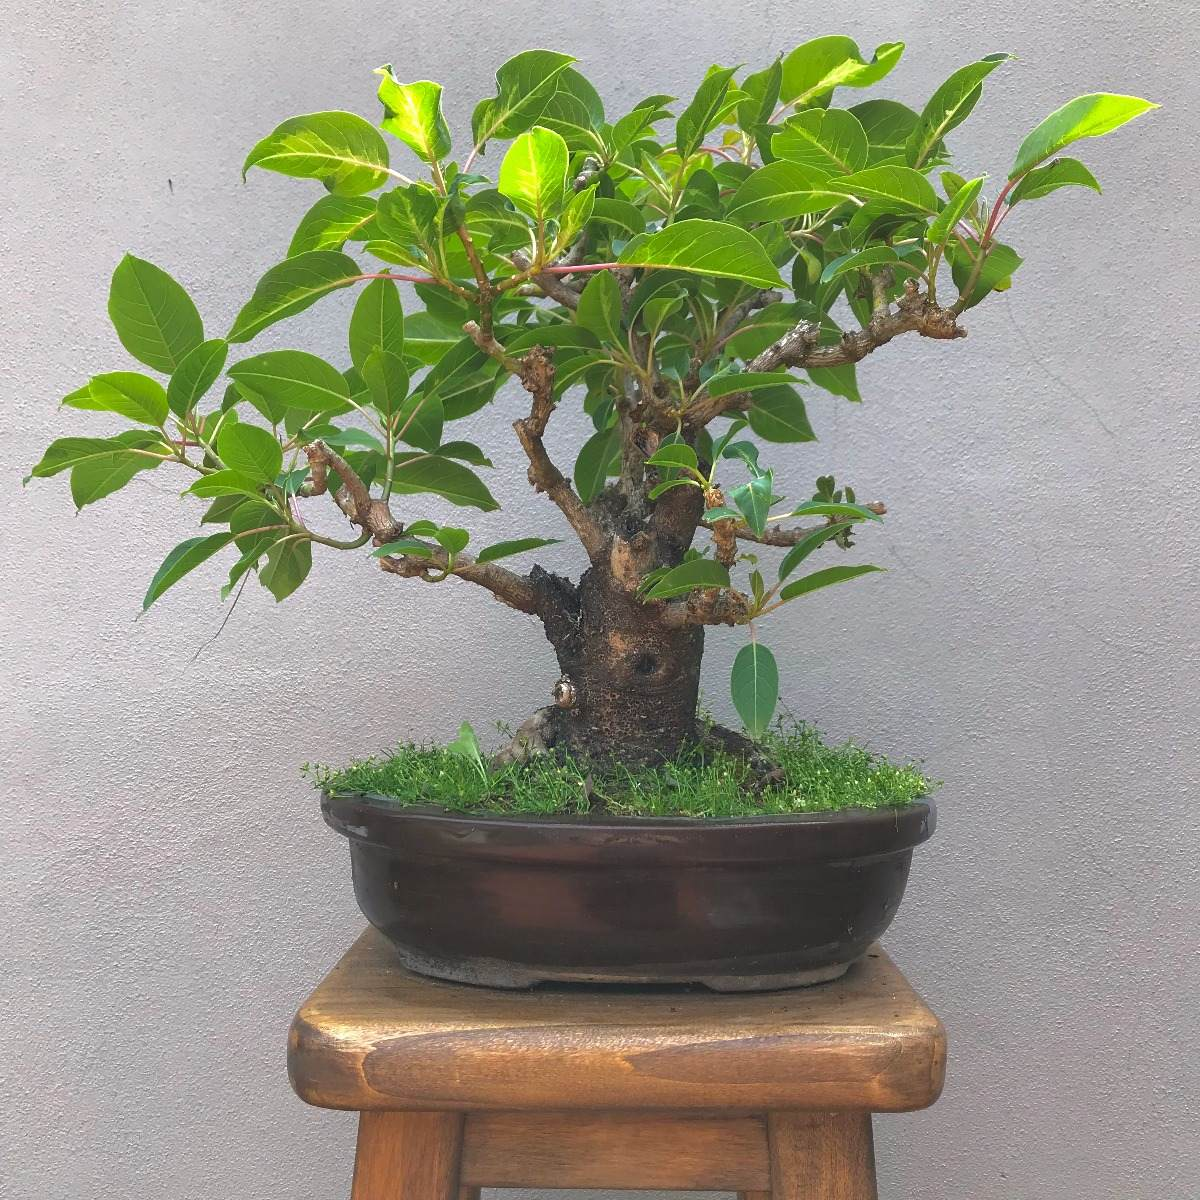 Tipos de bonsais de interior cool q tipos de plantas artificial bonsai plantas de interior with - Bonsais de interior ...